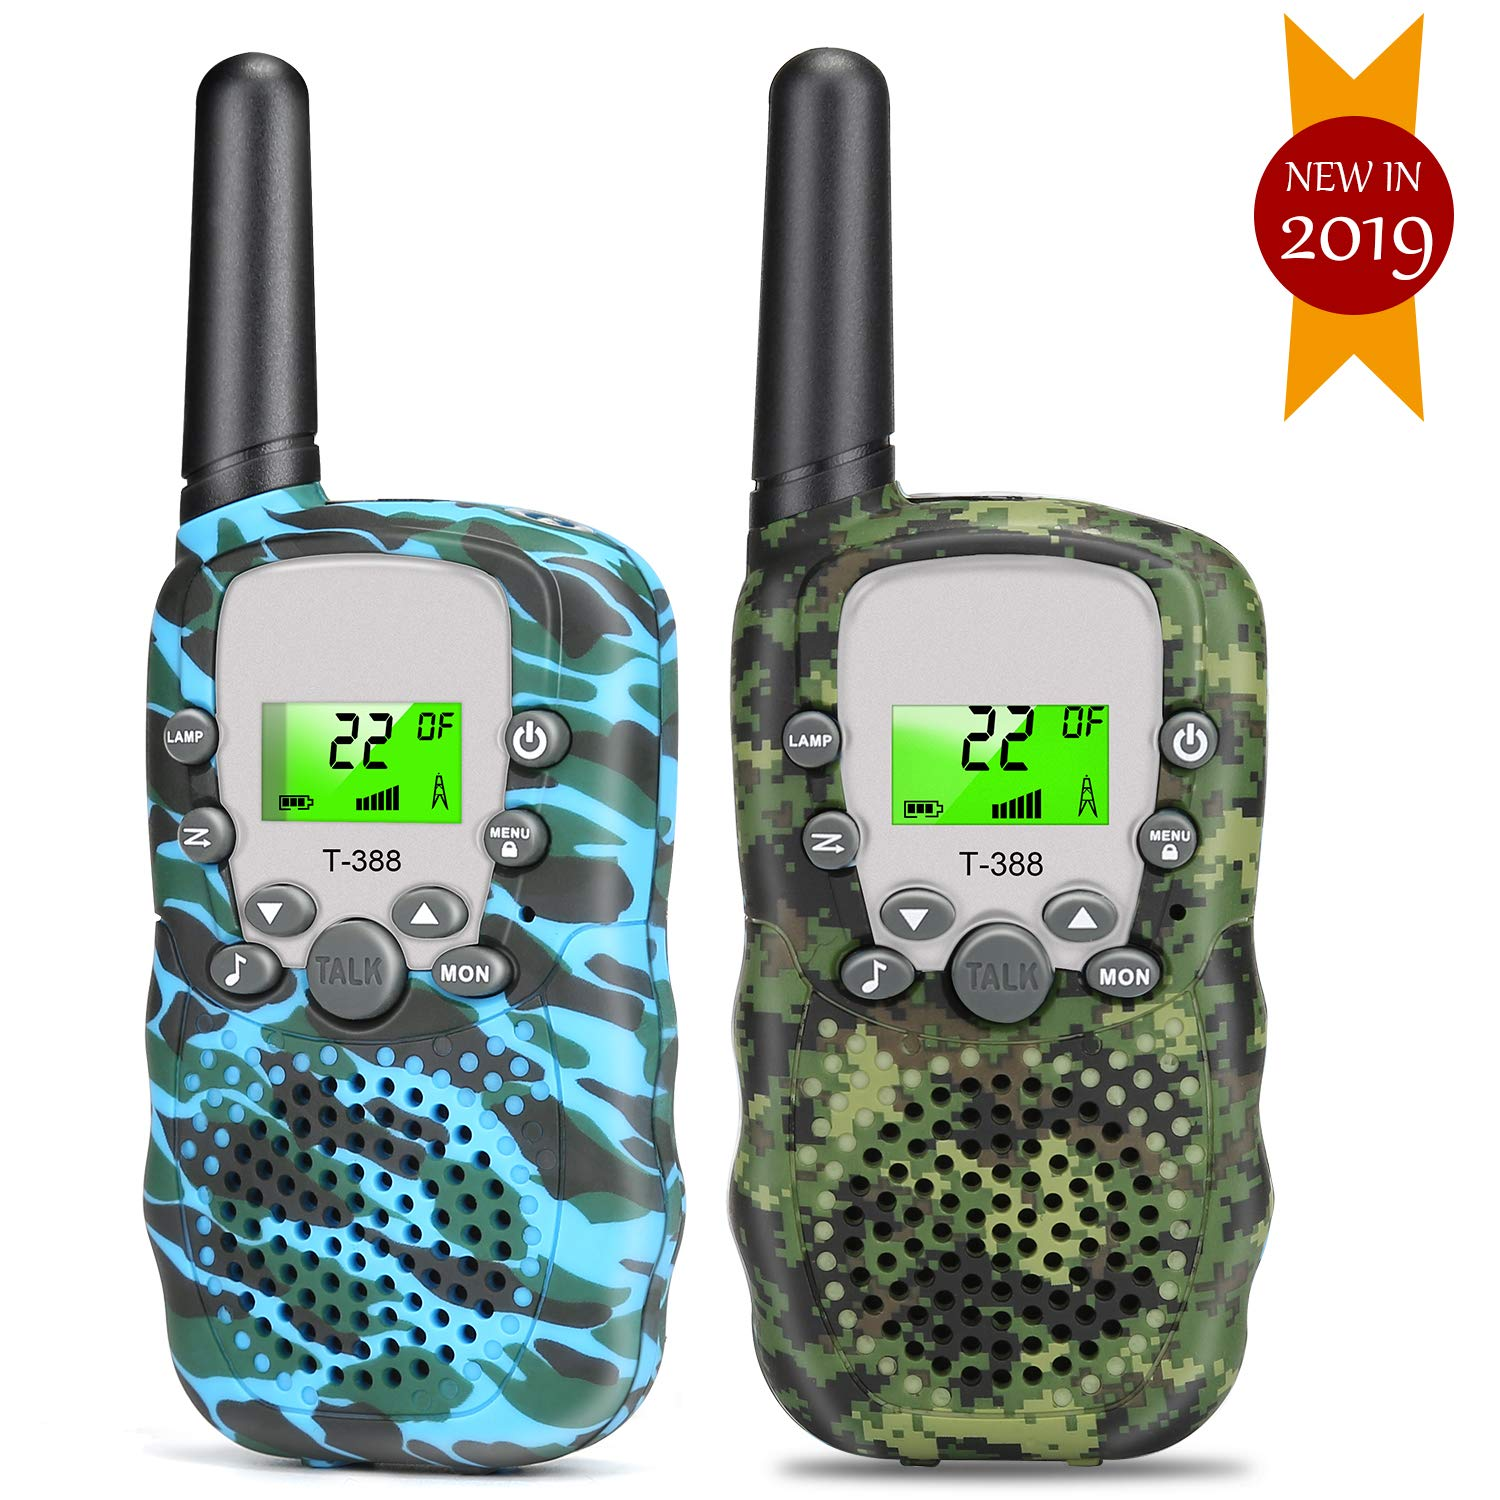 Walkie Talkies for Kids, 2 Way Radio Toy 22 Channel Great Kids Interphone, Best Gifts Toys for 4-12 Years Old Boys & Girls, Tools to Keep in Touch with Kids (2 Packs) by YUZW (Image #1)